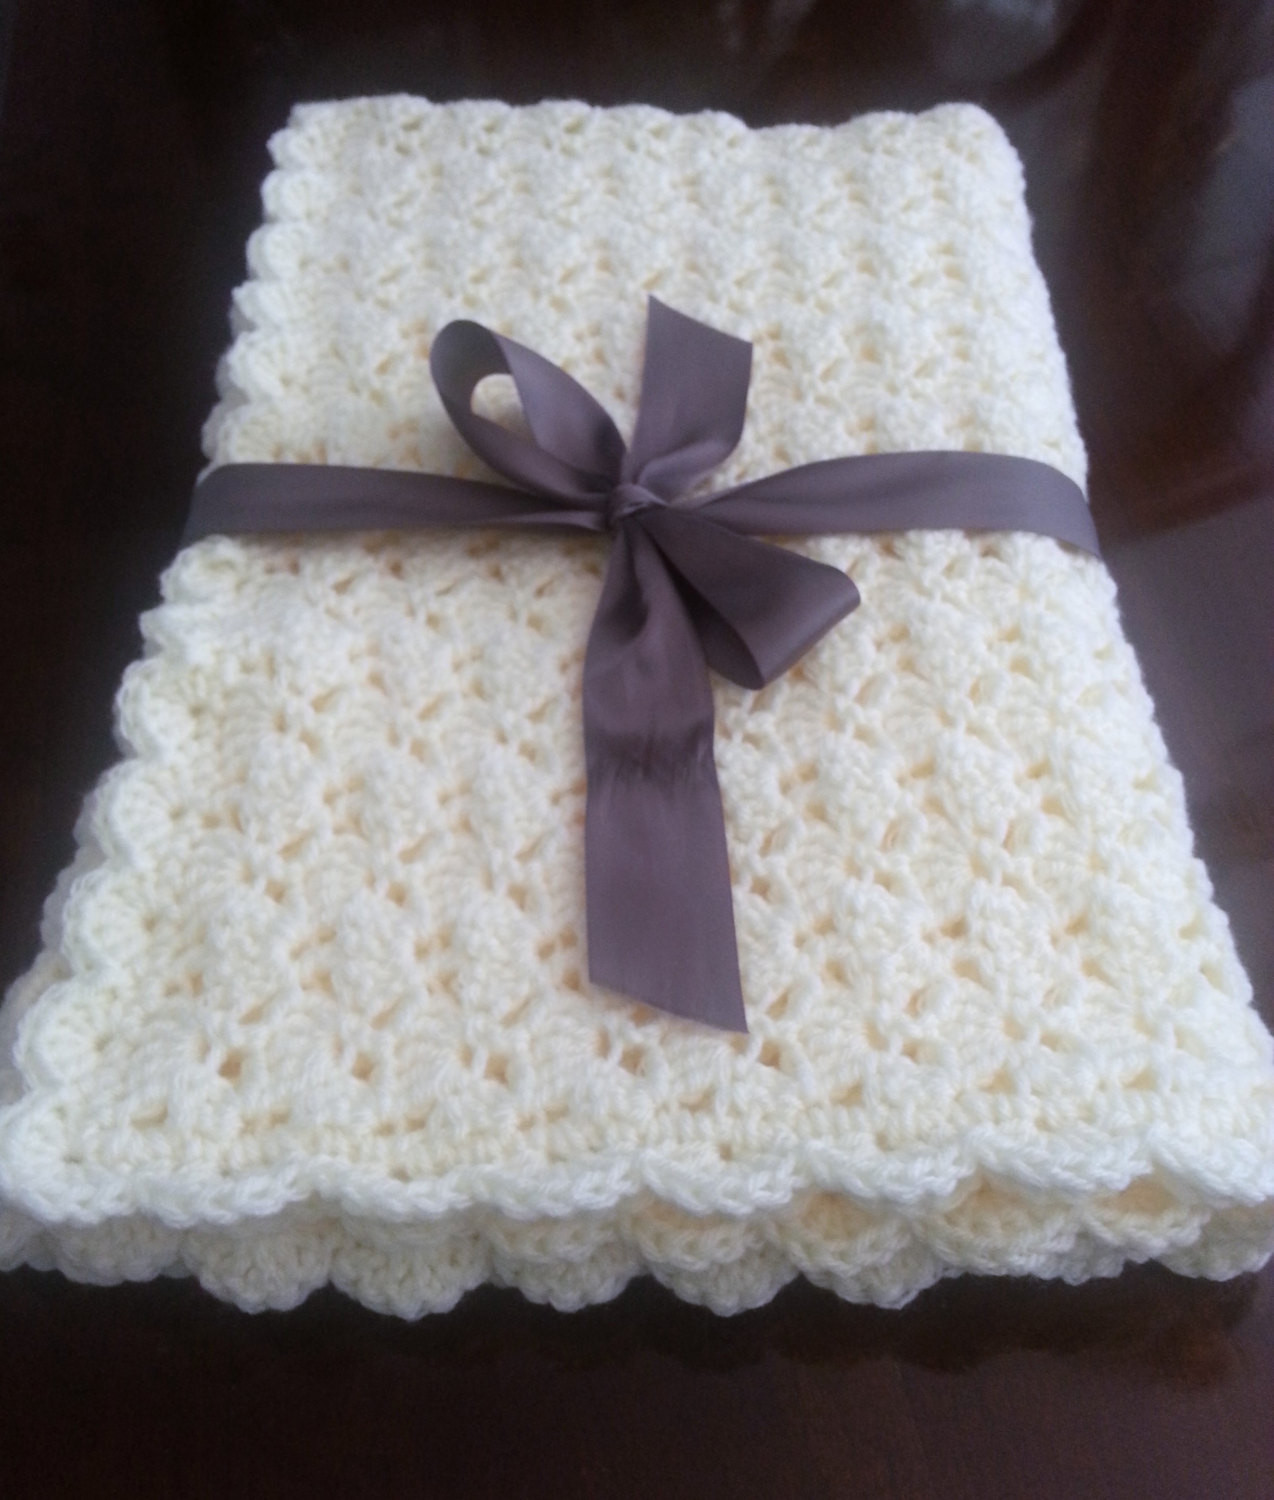 Inspirational Crochet Shell Baby Blanket Crochet Baby Boy Girl Blanket Shell Stitch Baby Blanket Of Brilliant 49 Images Shell Stitch Baby Blanket